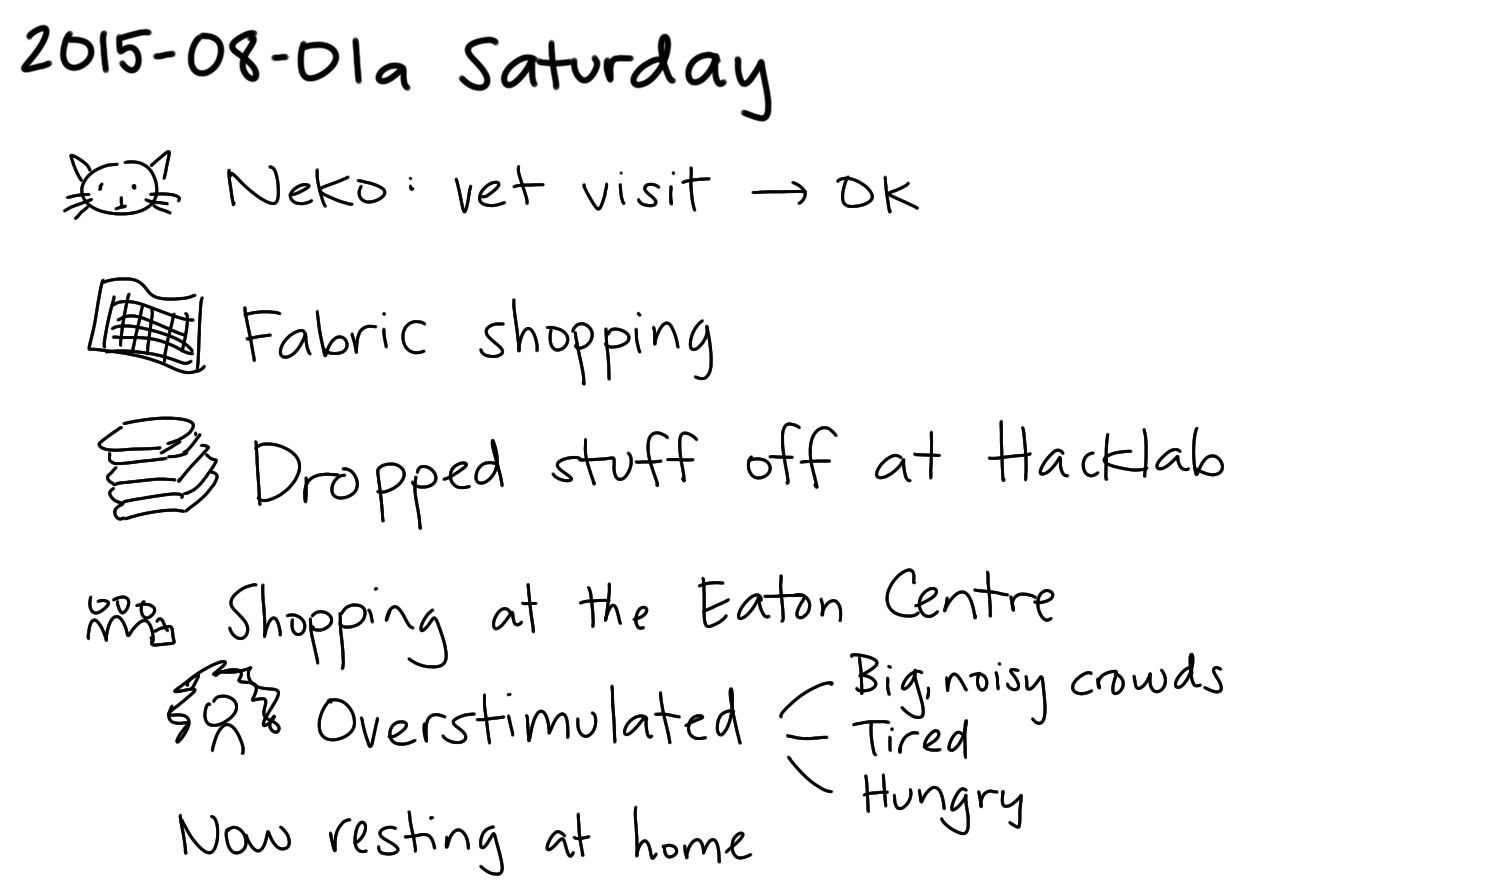 2015-08-01a Saturday -- index card #journal.png